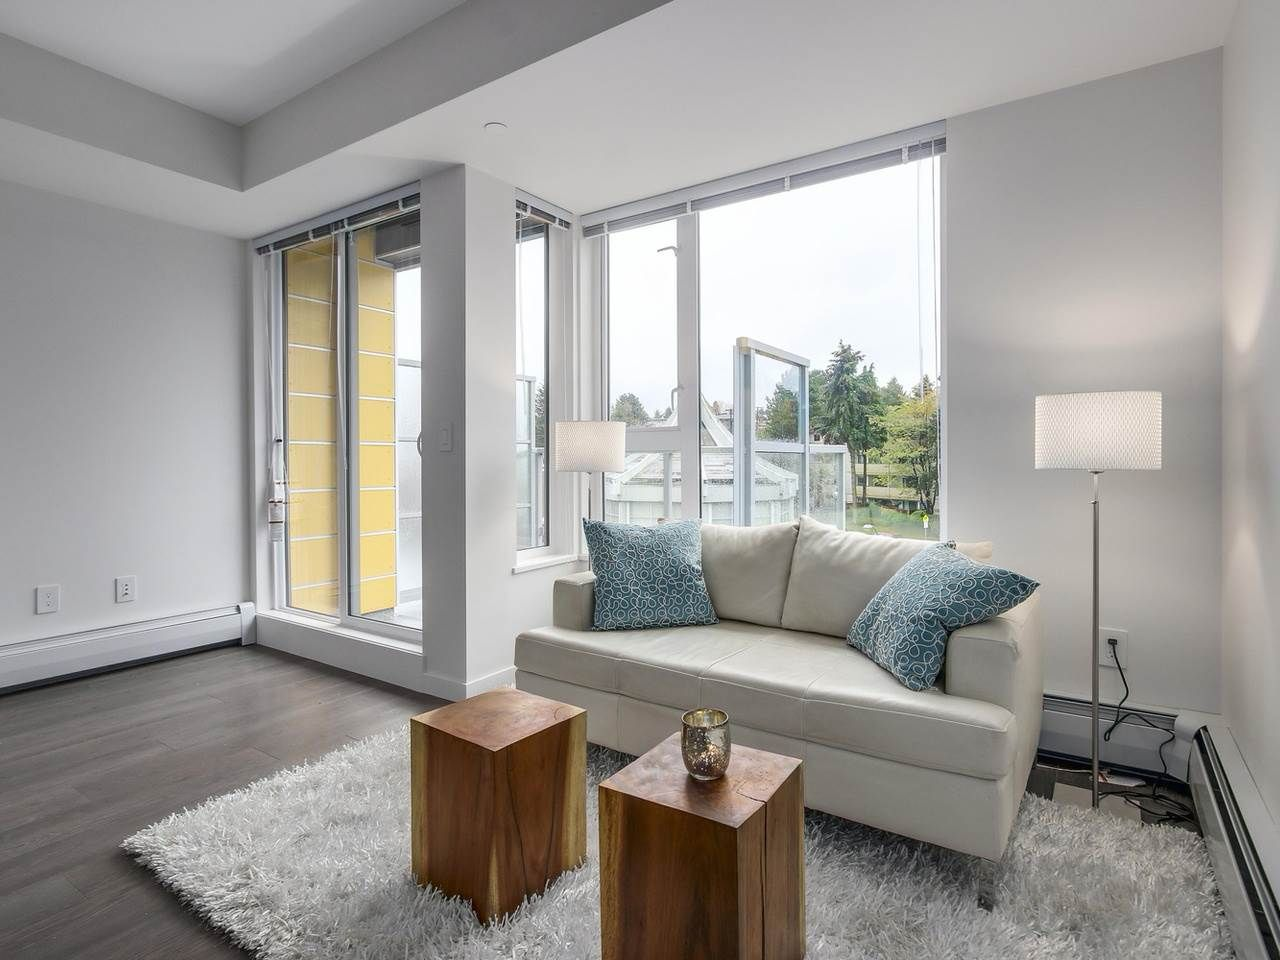 """Photo 3: Photos: 604 417 GREAT NORTHERN Way in Vancouver: Mount Pleasant VE Condo for sale in """"CANVAS"""" (Vancouver East)  : MLS®# R2118078"""